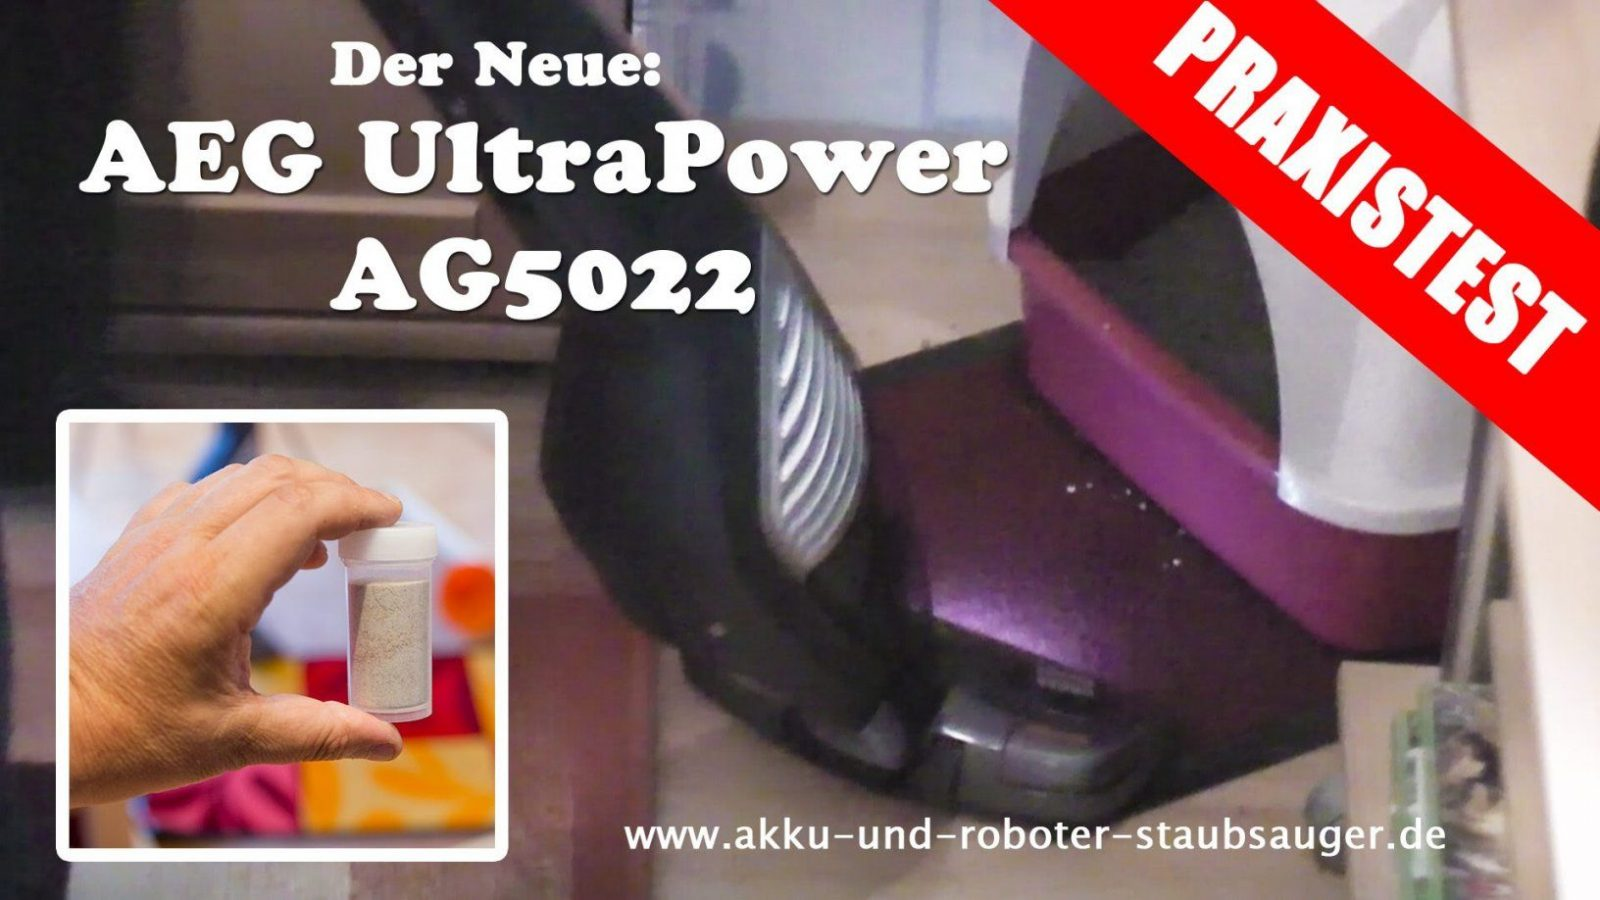 Aeg Li60 Ultrapower Ag 5022 Im Test  Praxistest  Youtube von Aeg Eco Li 60 Ultrapower Ag 5022 Photo